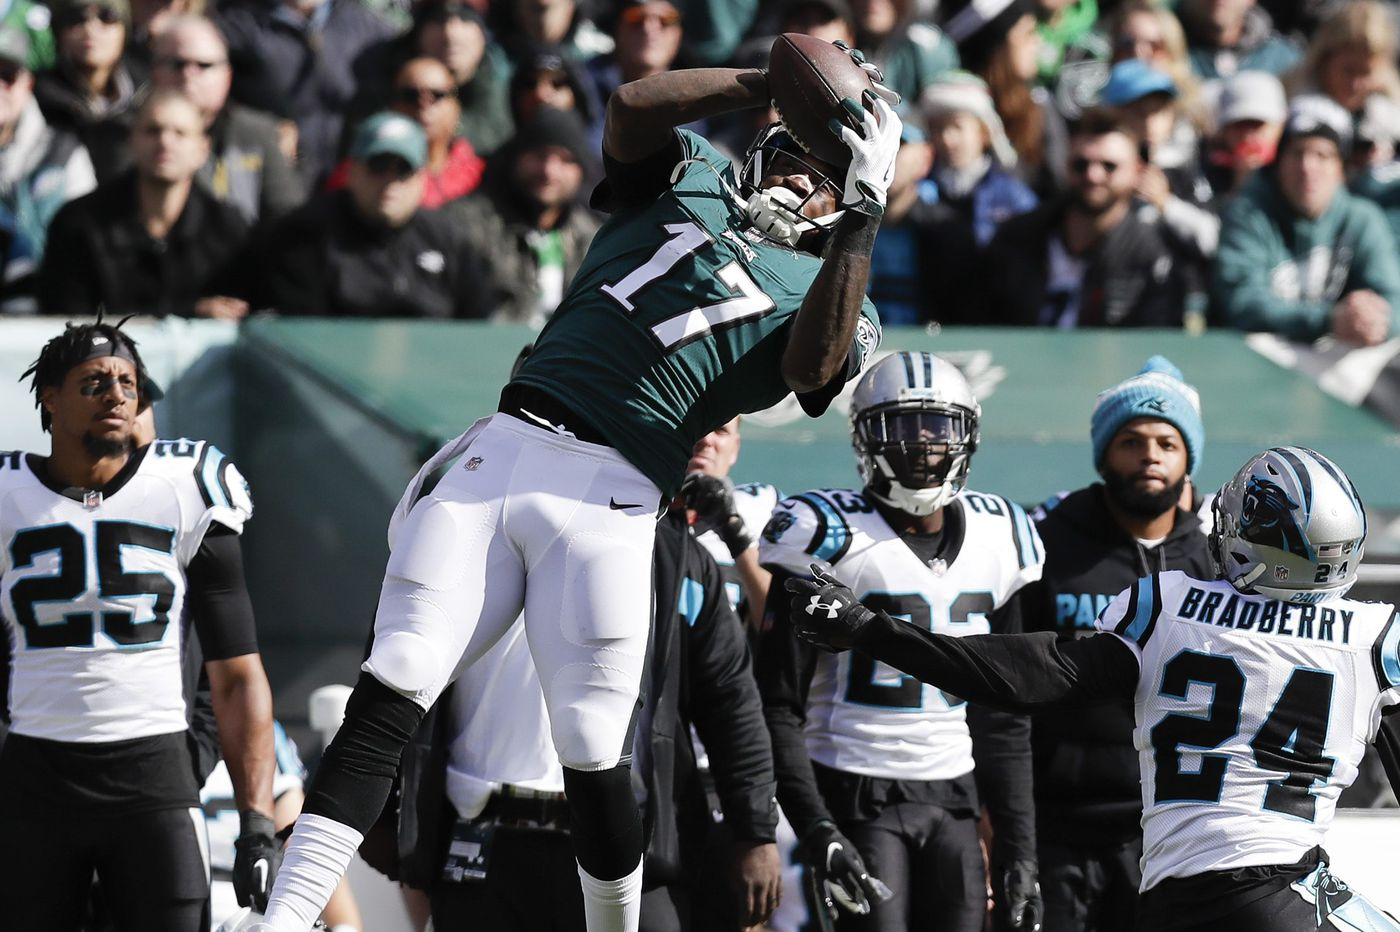 Panthers 21, Eagles 17 — as it happened